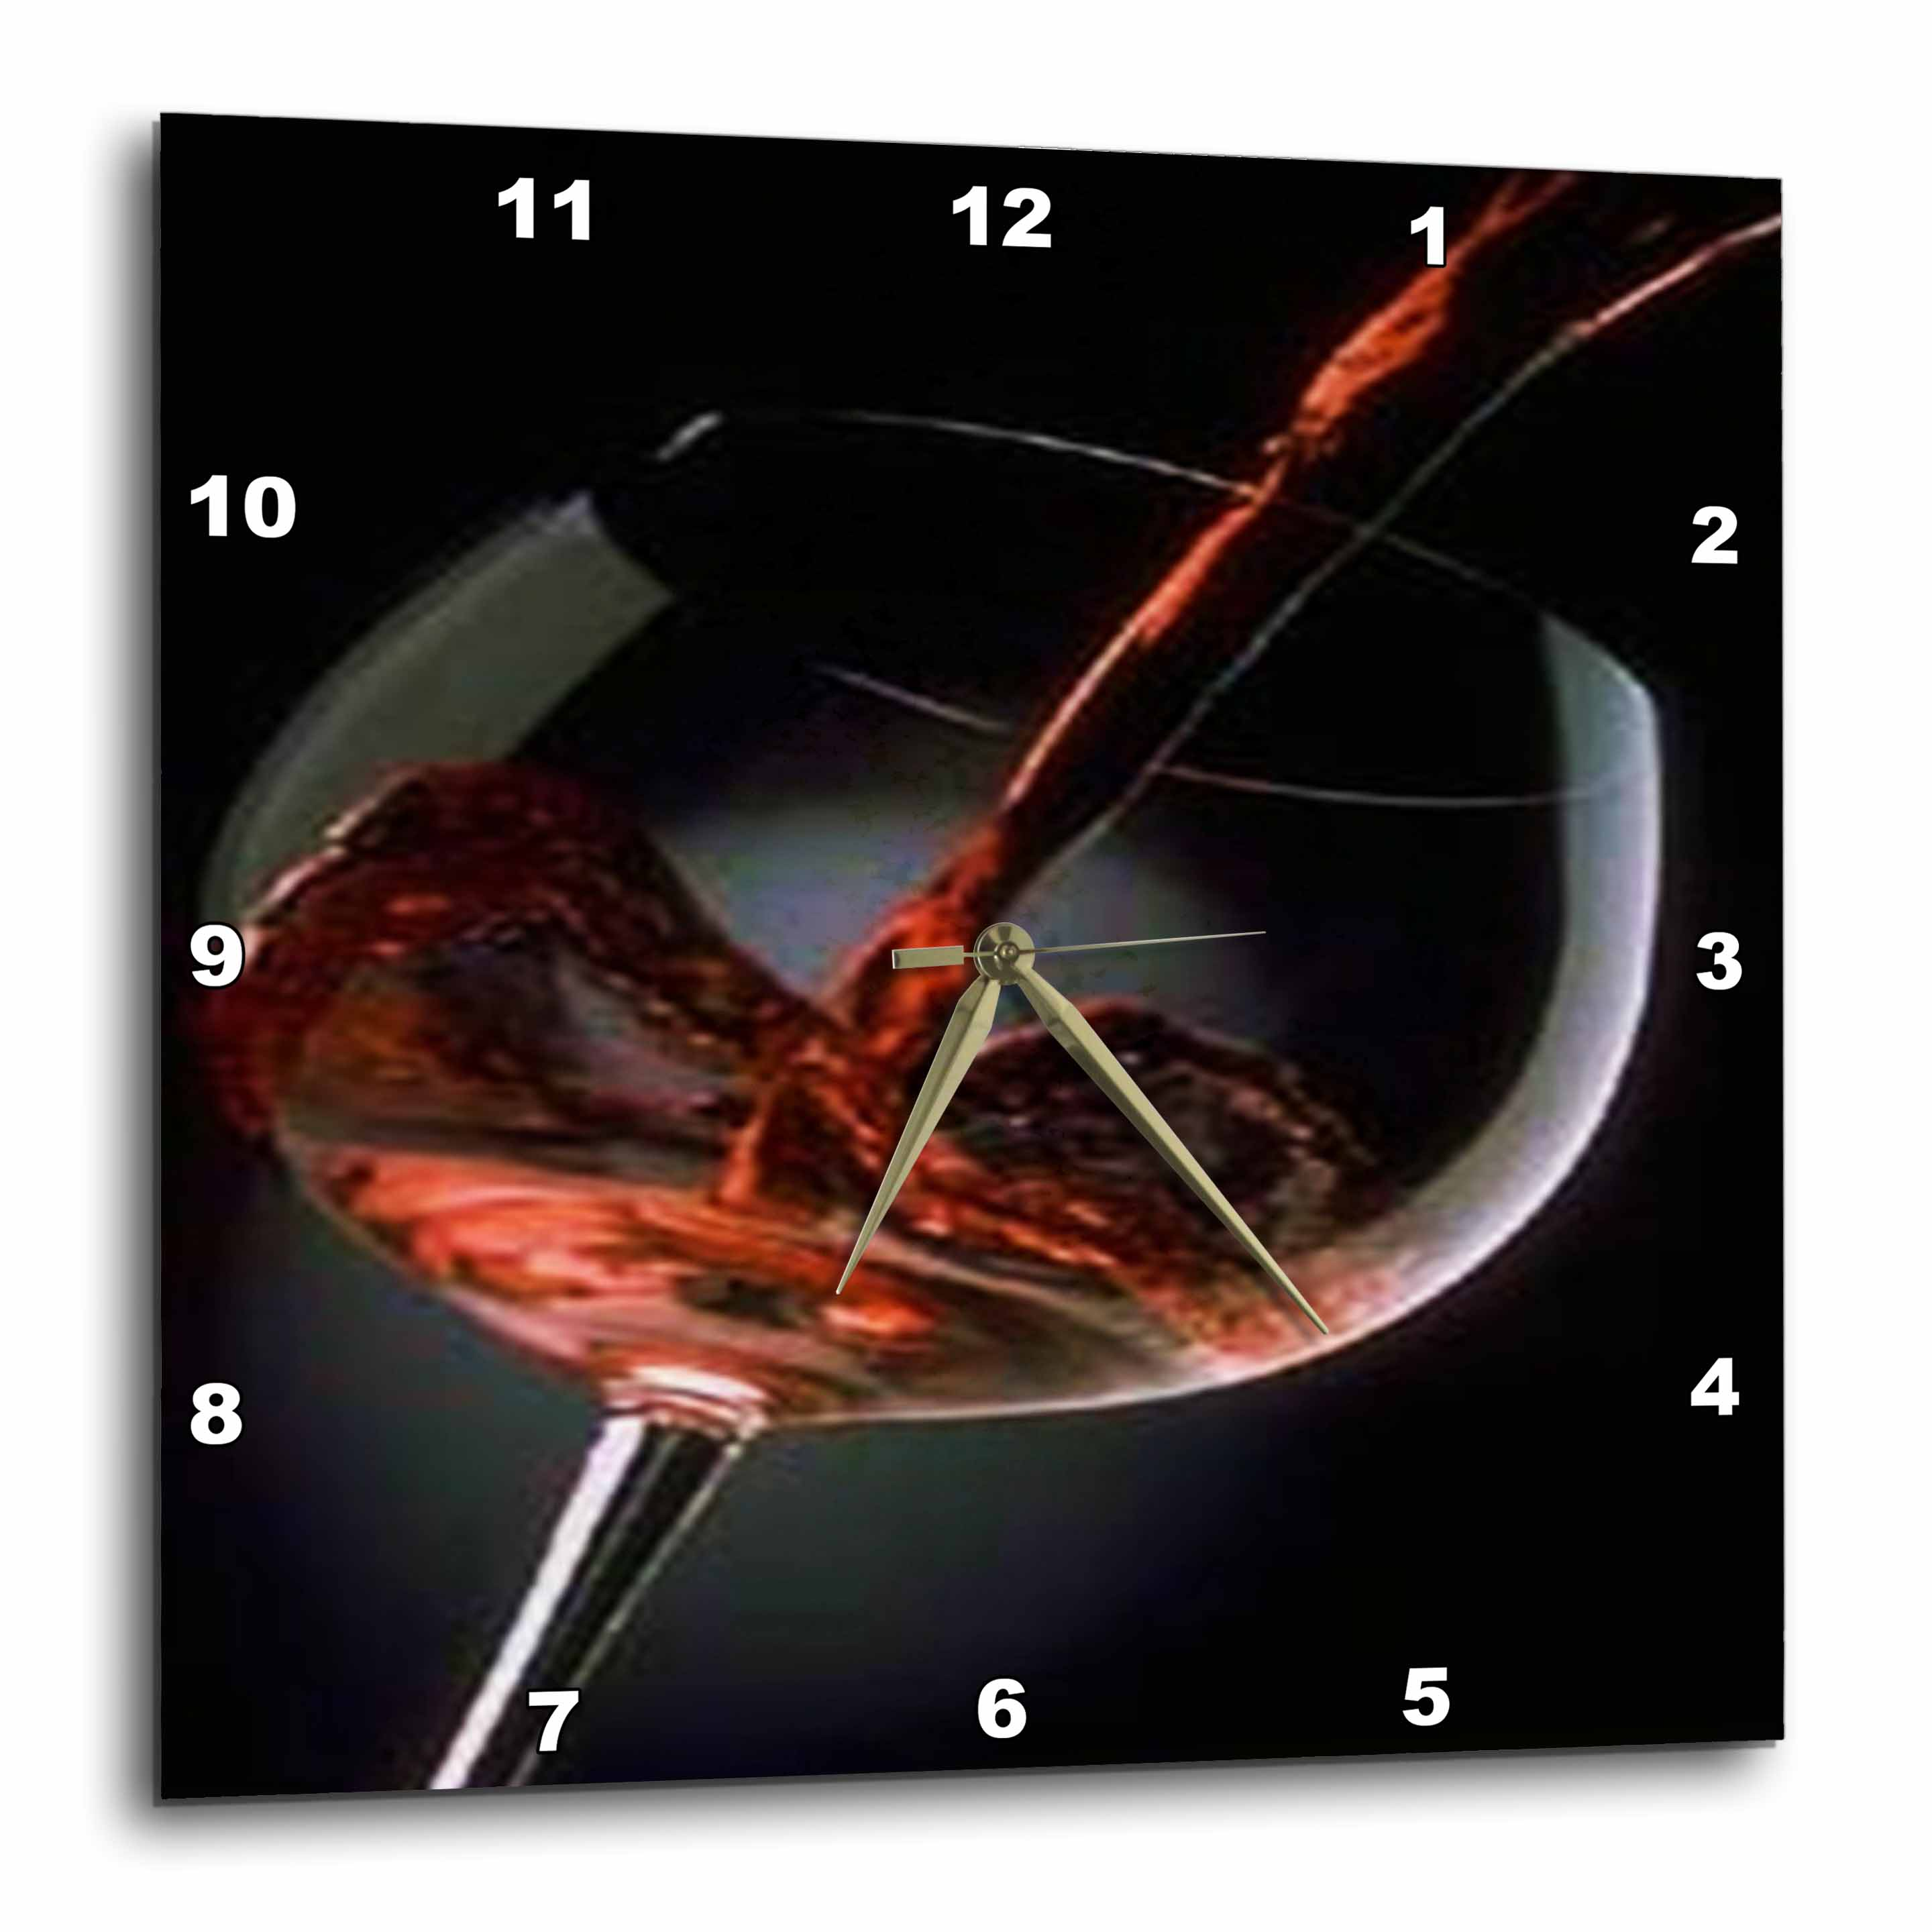 3dRose Pour A Glass Of Red Wine, Wall Clock, 13 by 13-inch